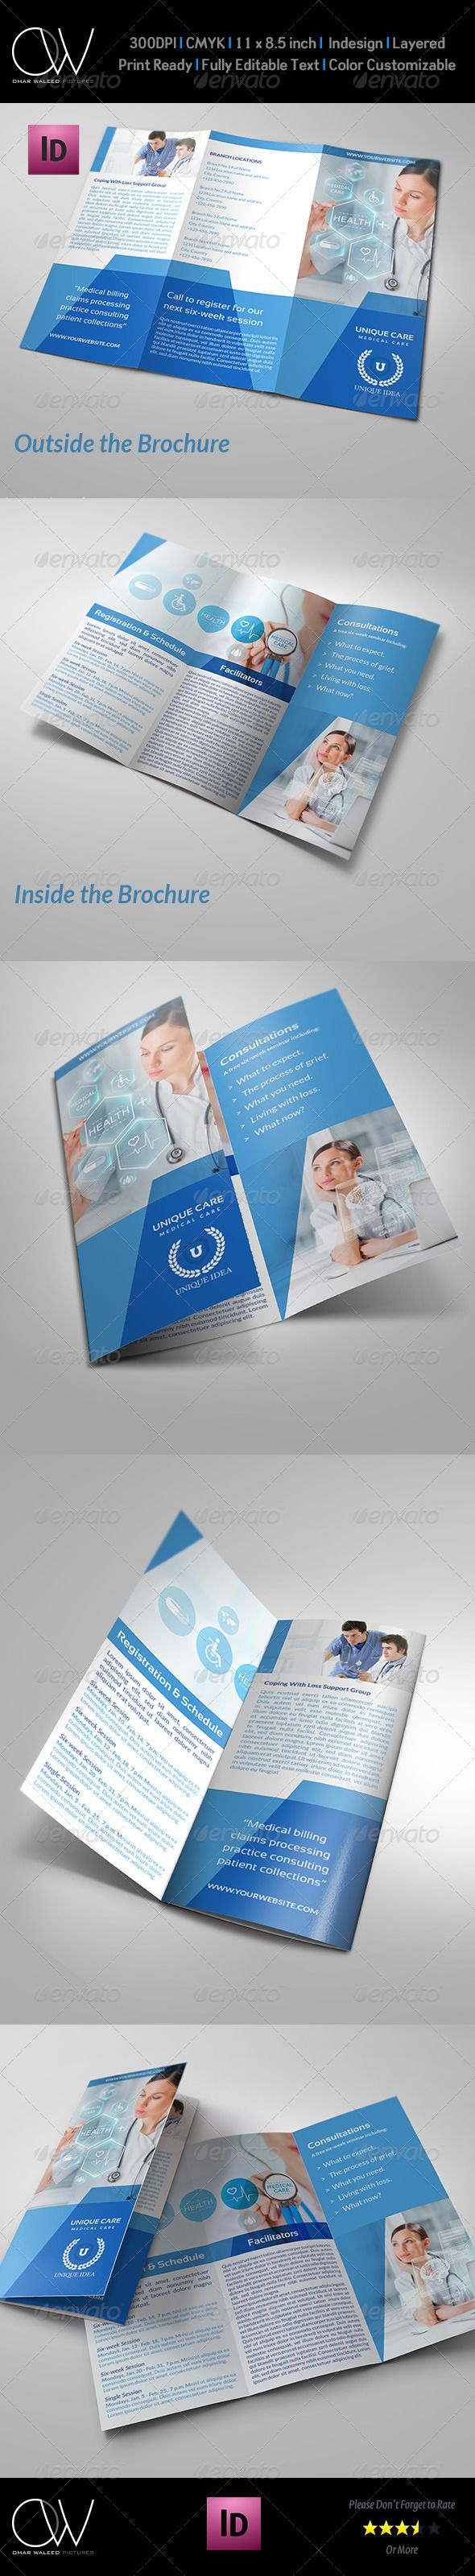 Hospital Tri-Fold Brochure Template Vol.2